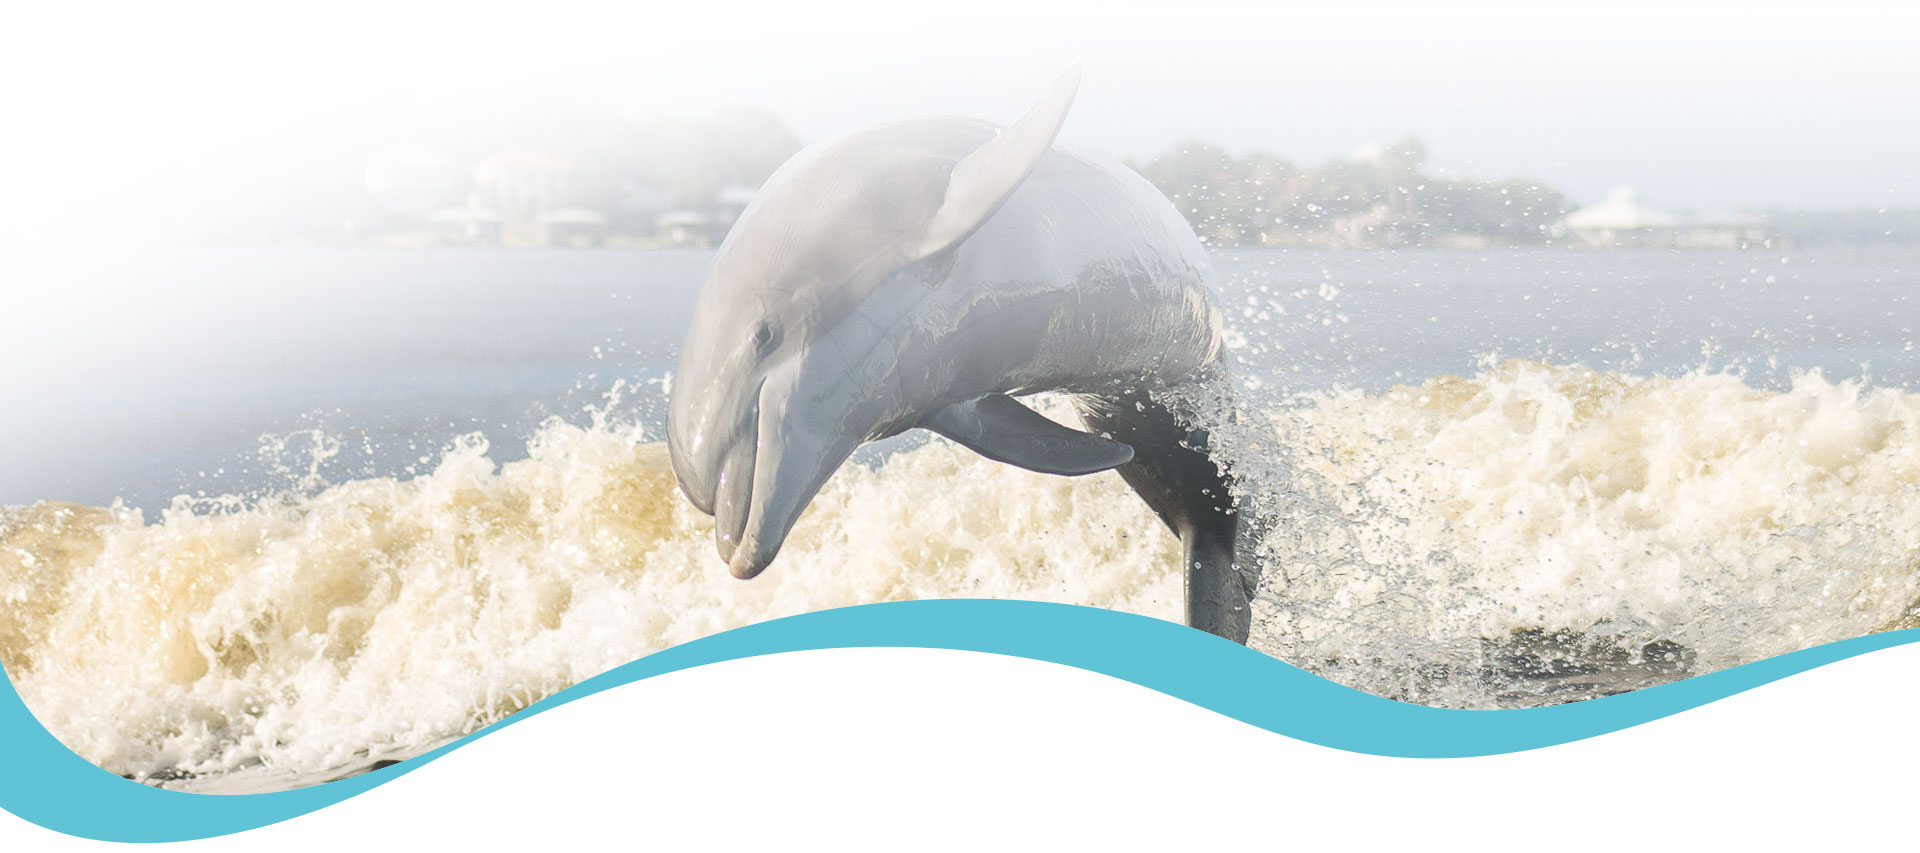 $12 Dolphin Cruise - Gulf Shores, Orange Beach, Alabama